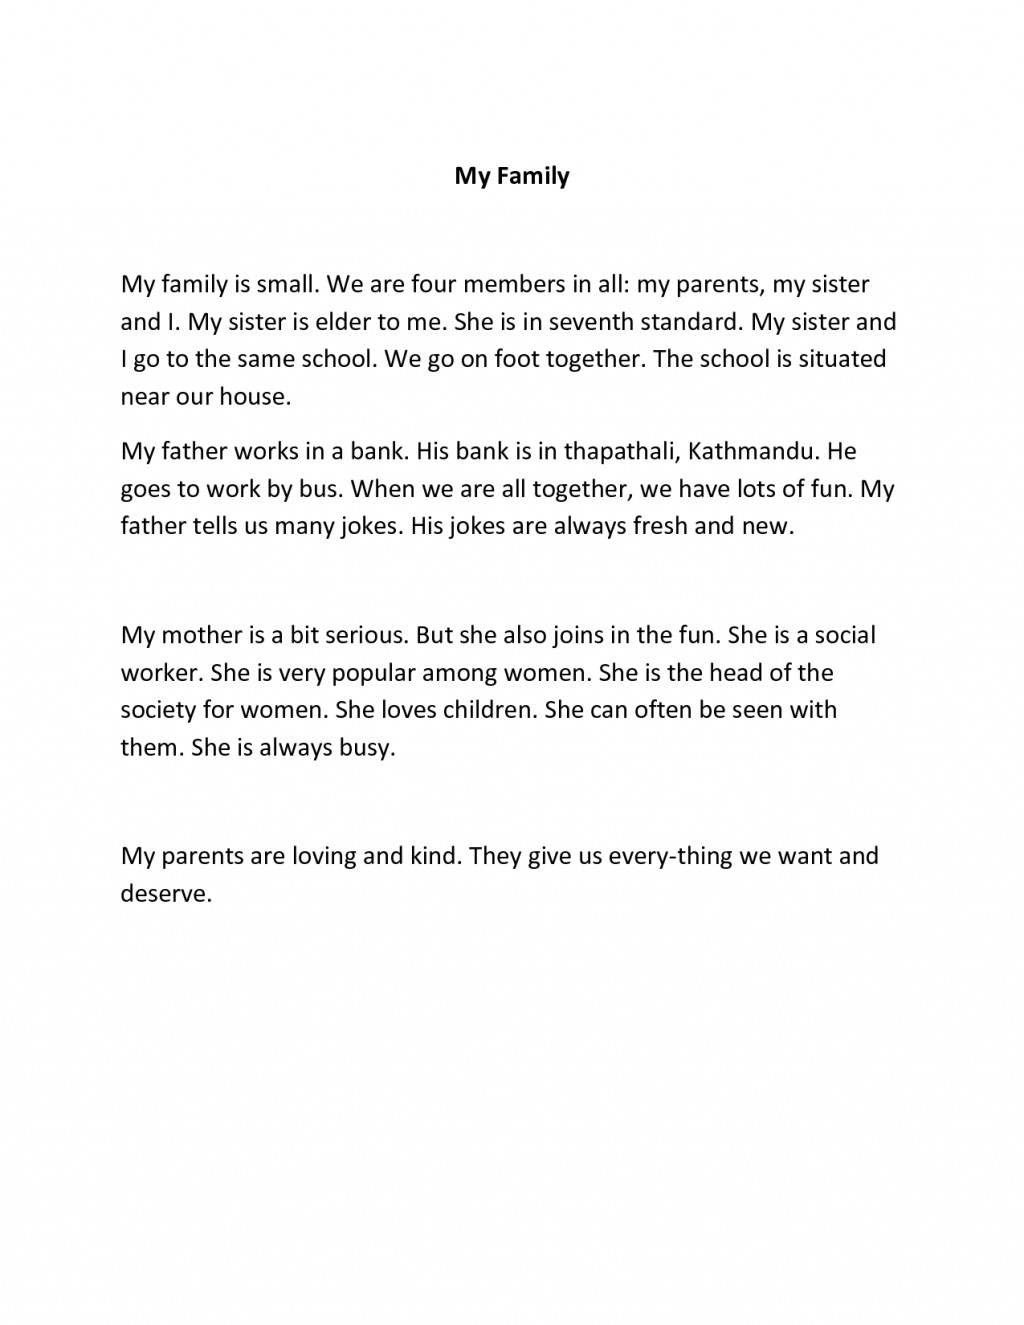 005 Essay Example Short On My Family In English L Shocking Questions General Surgery Outline Examples About Love Large